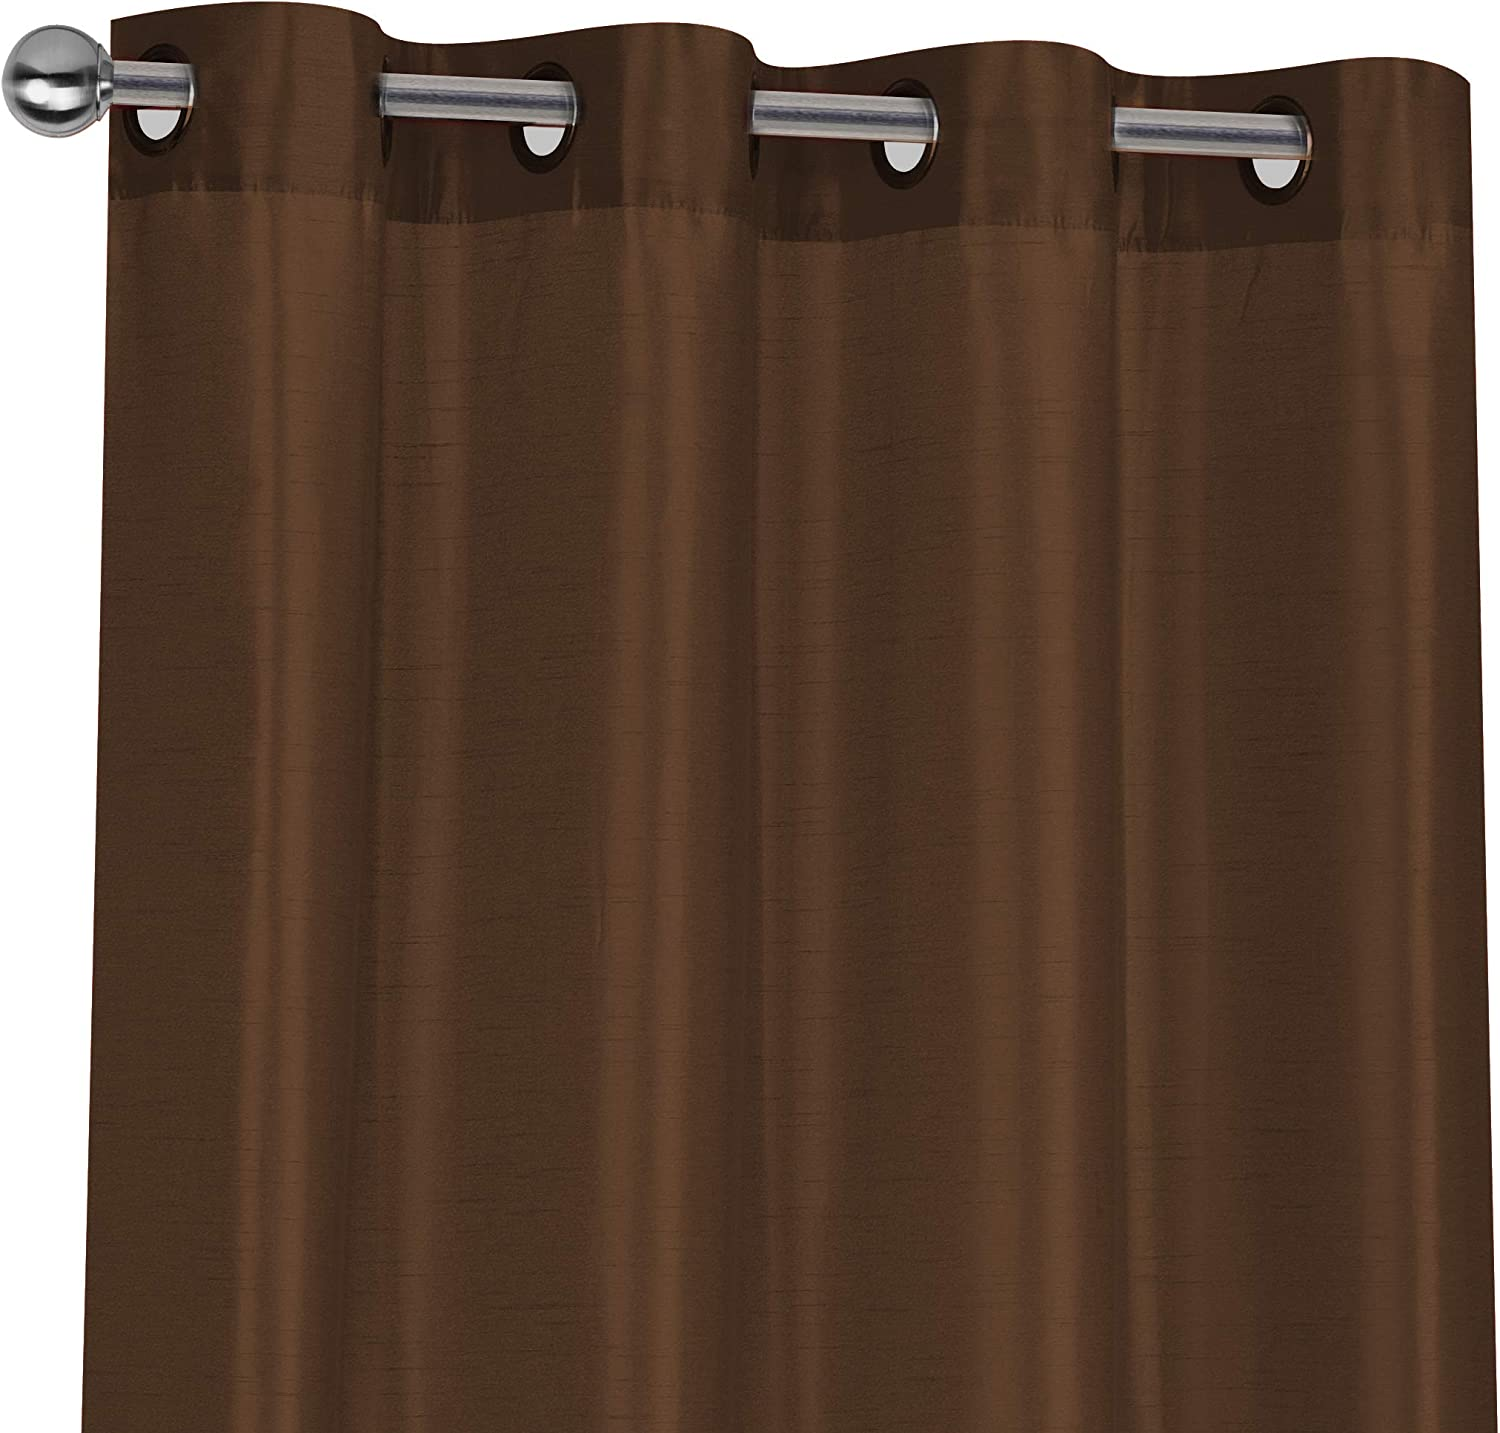 Regal Home Collections 2 Pack Semi Sheer Faux Silk Grommet Curtains - Assorted Colors (Brown)